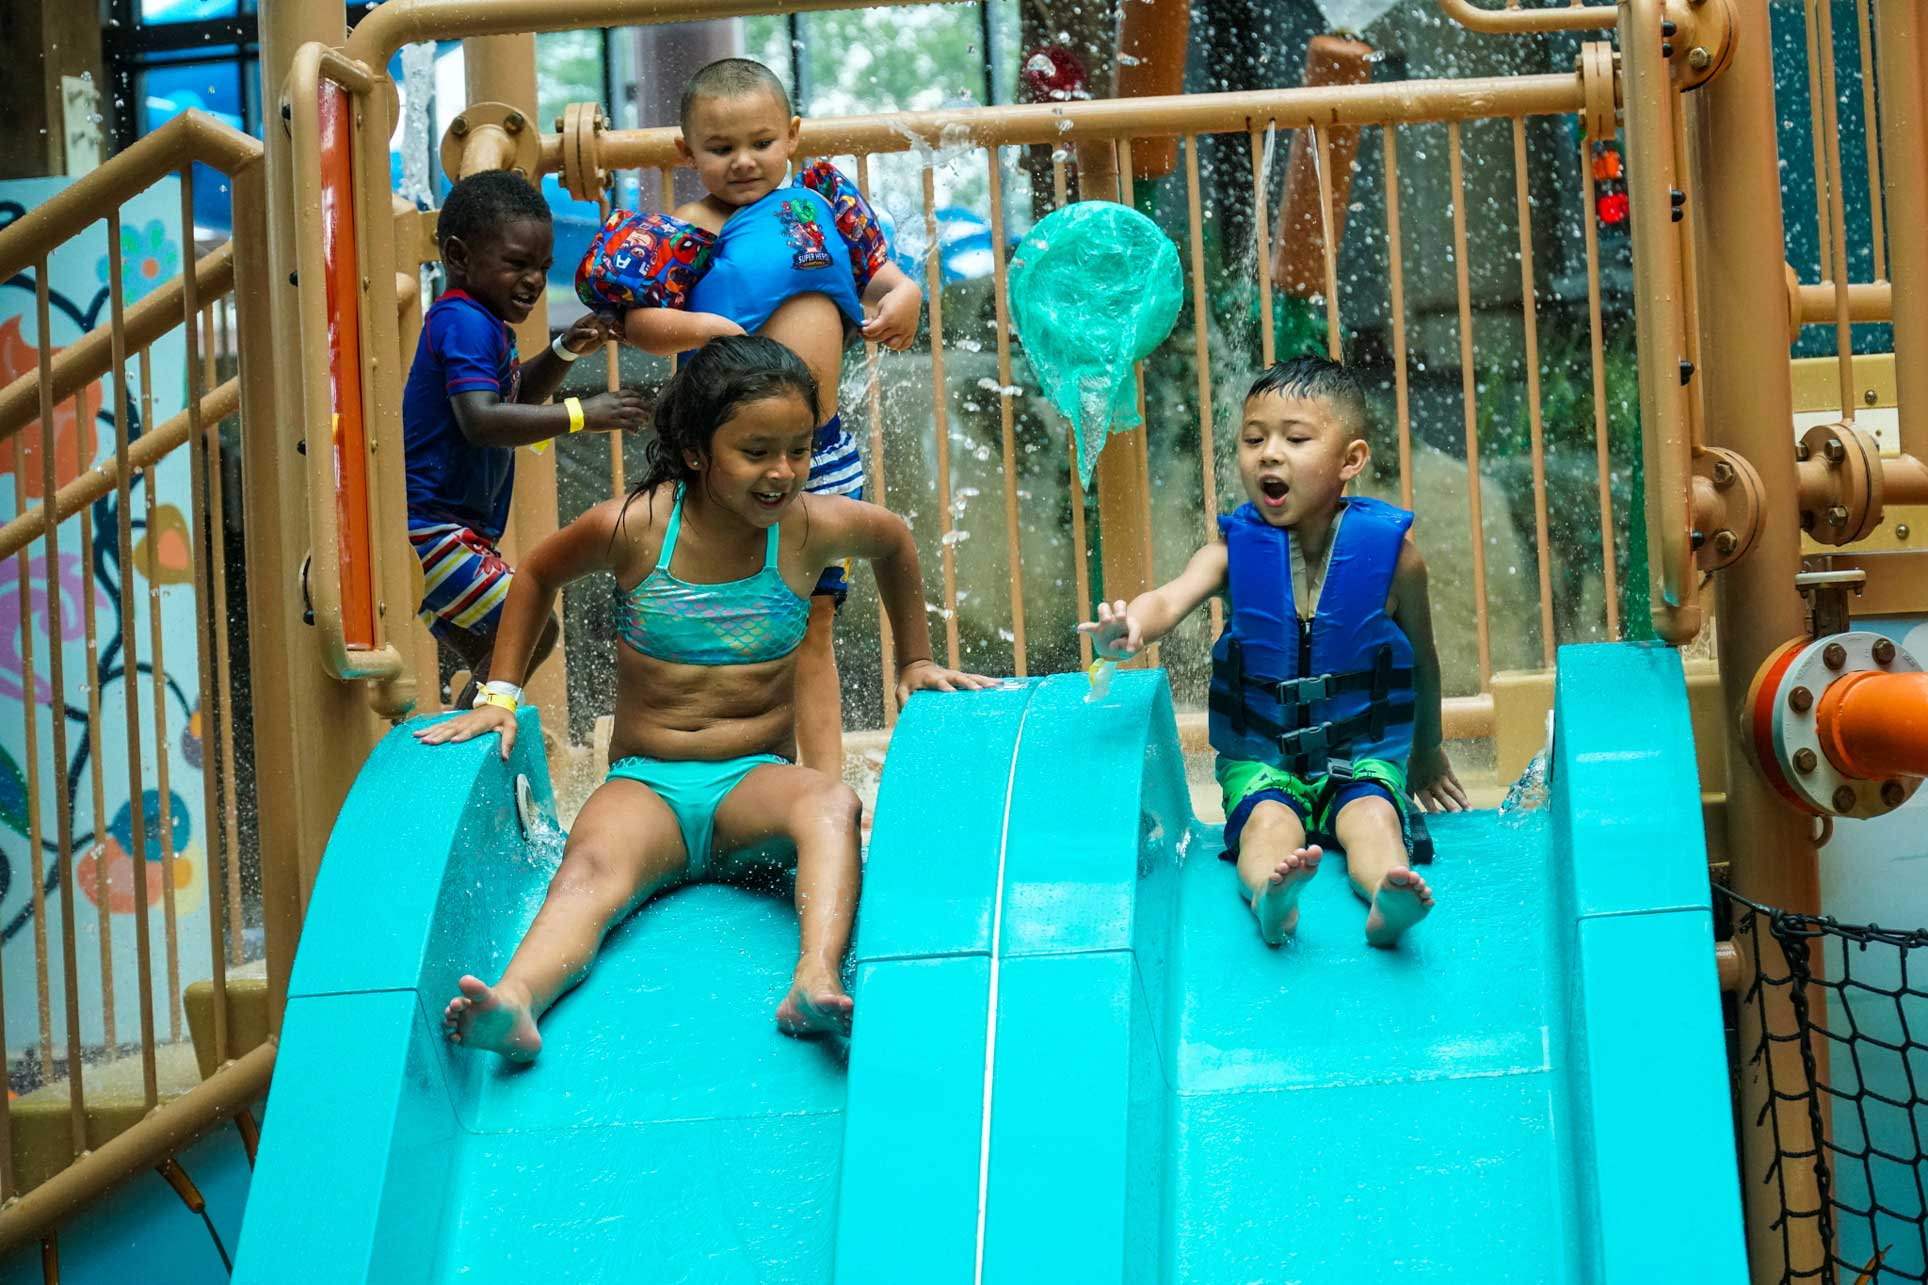 Soaring Eagle kids going down slide